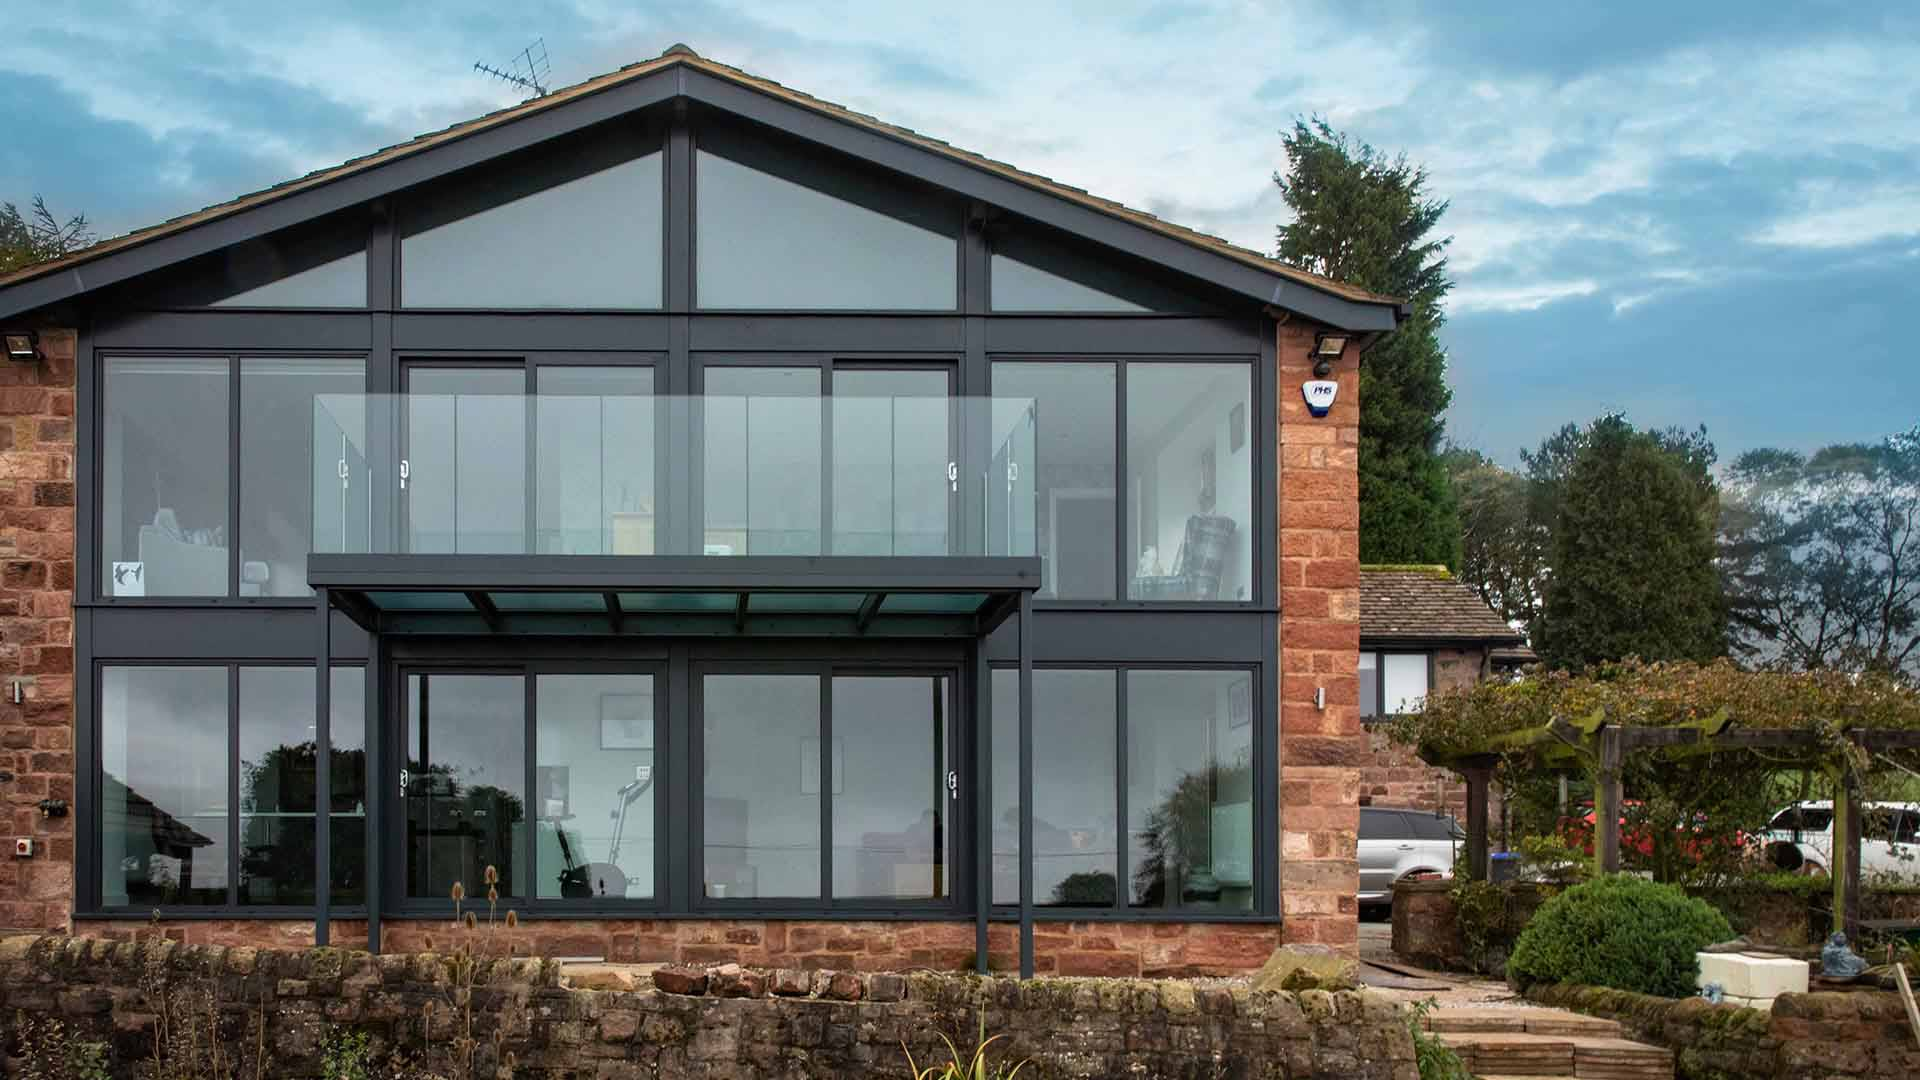 Debunking Myths: 5 myths about Glass Facades/ Glazed Facades buildings - Sheet2